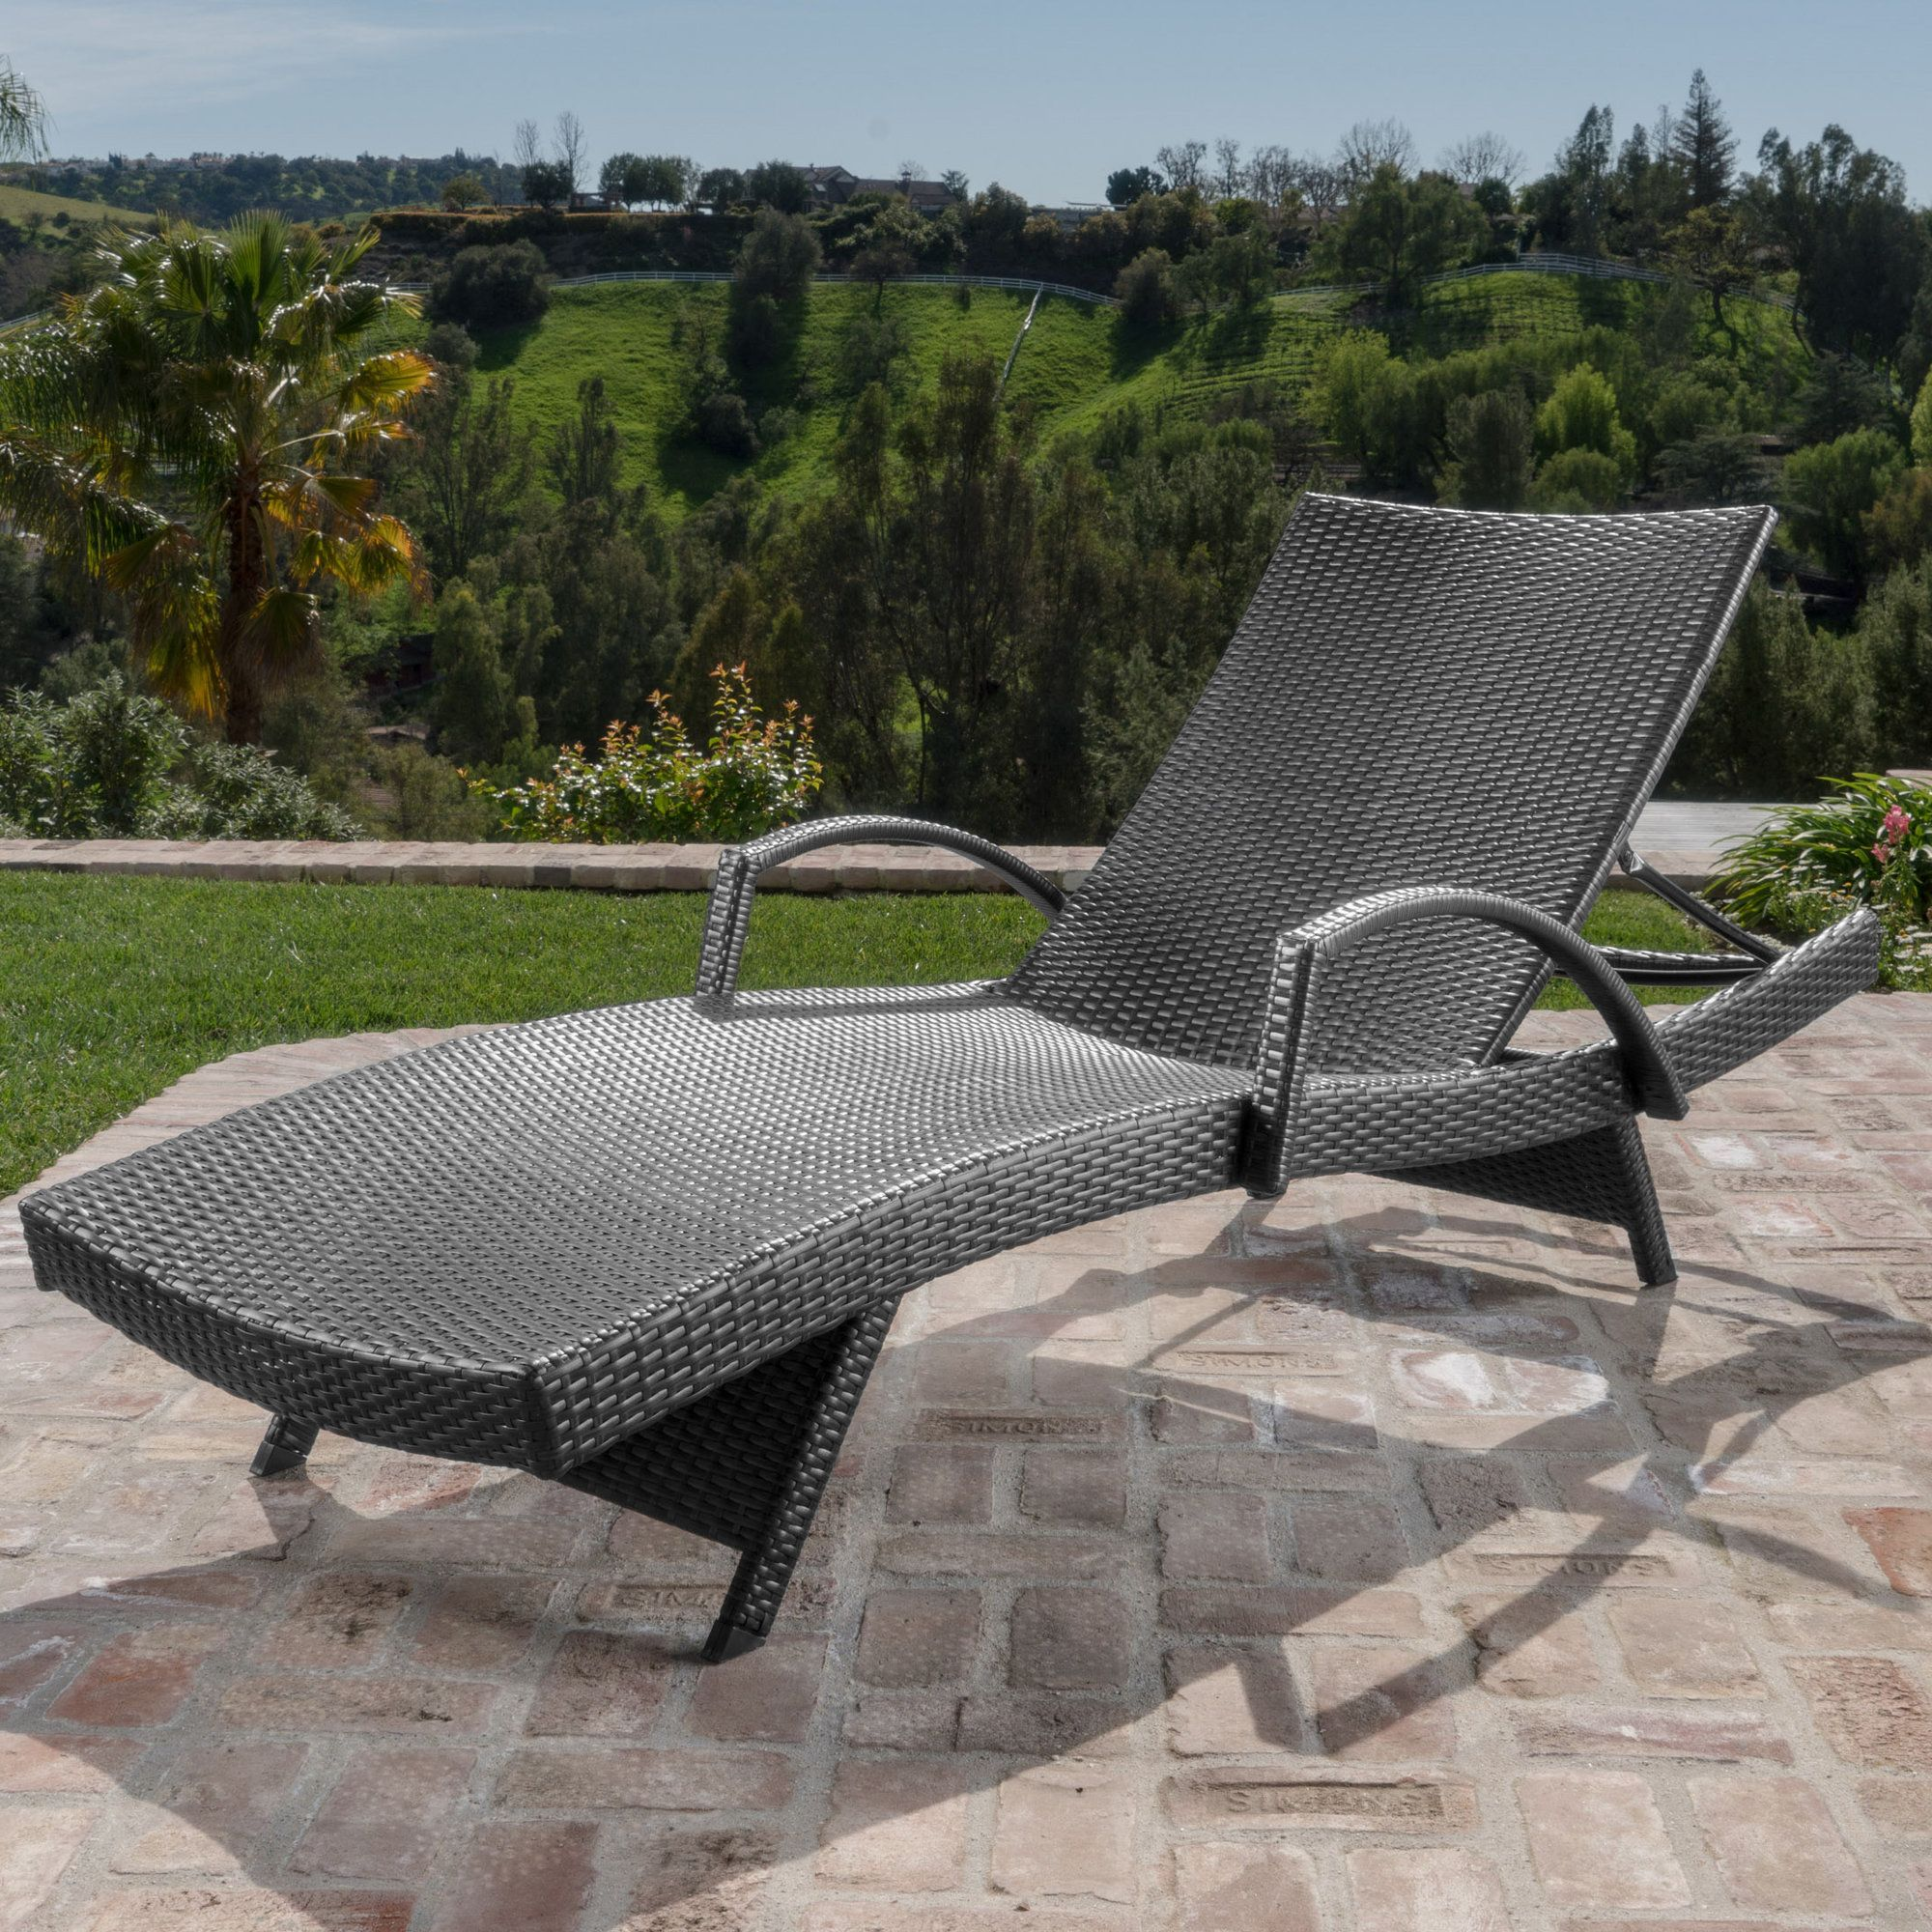 Berne outdoor wicker armed chaise lounge patio rocking